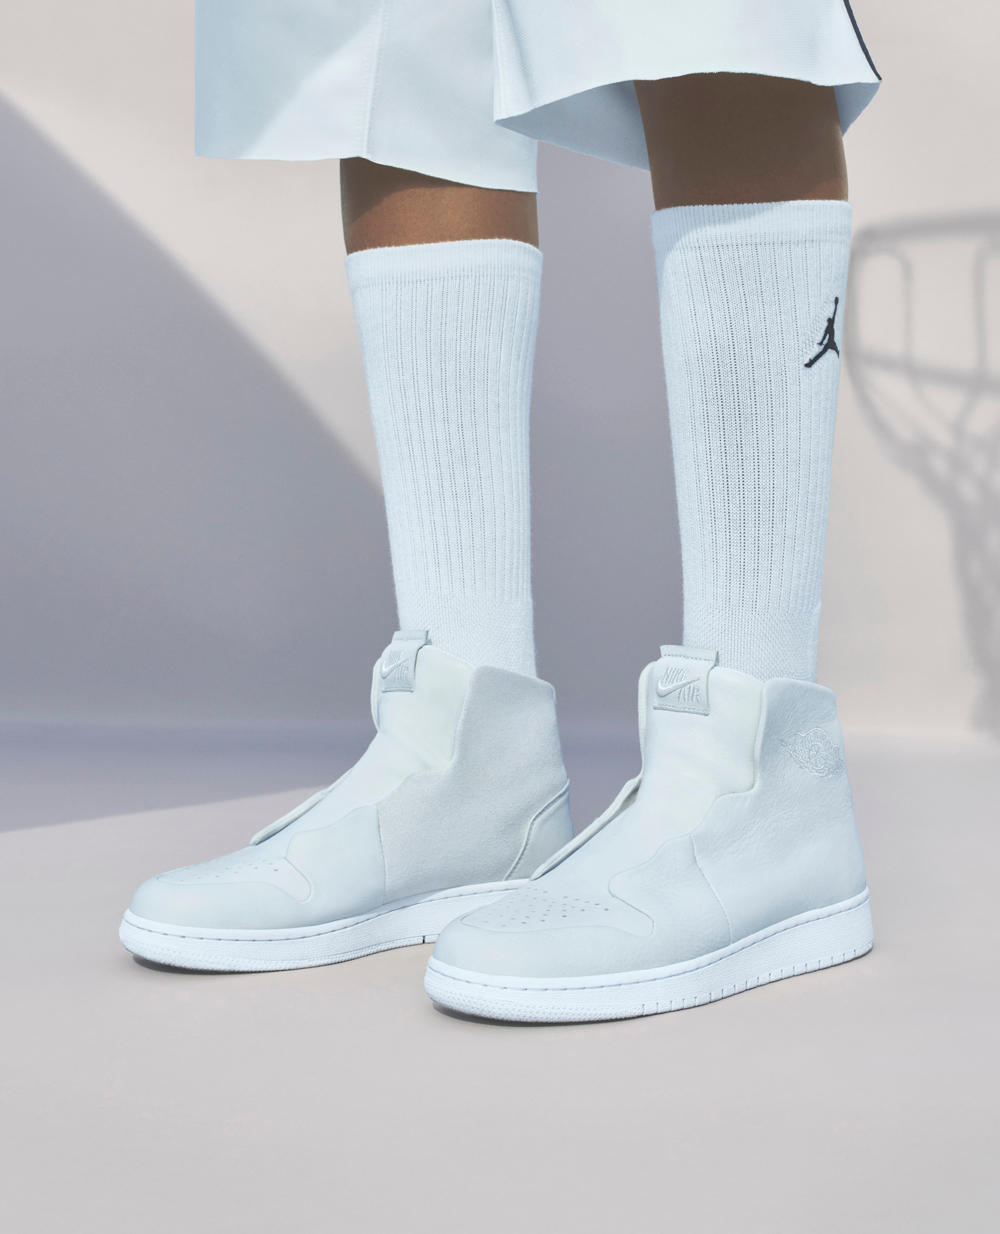 nike-one-reimagined-air-jordan-1-sage.jpg